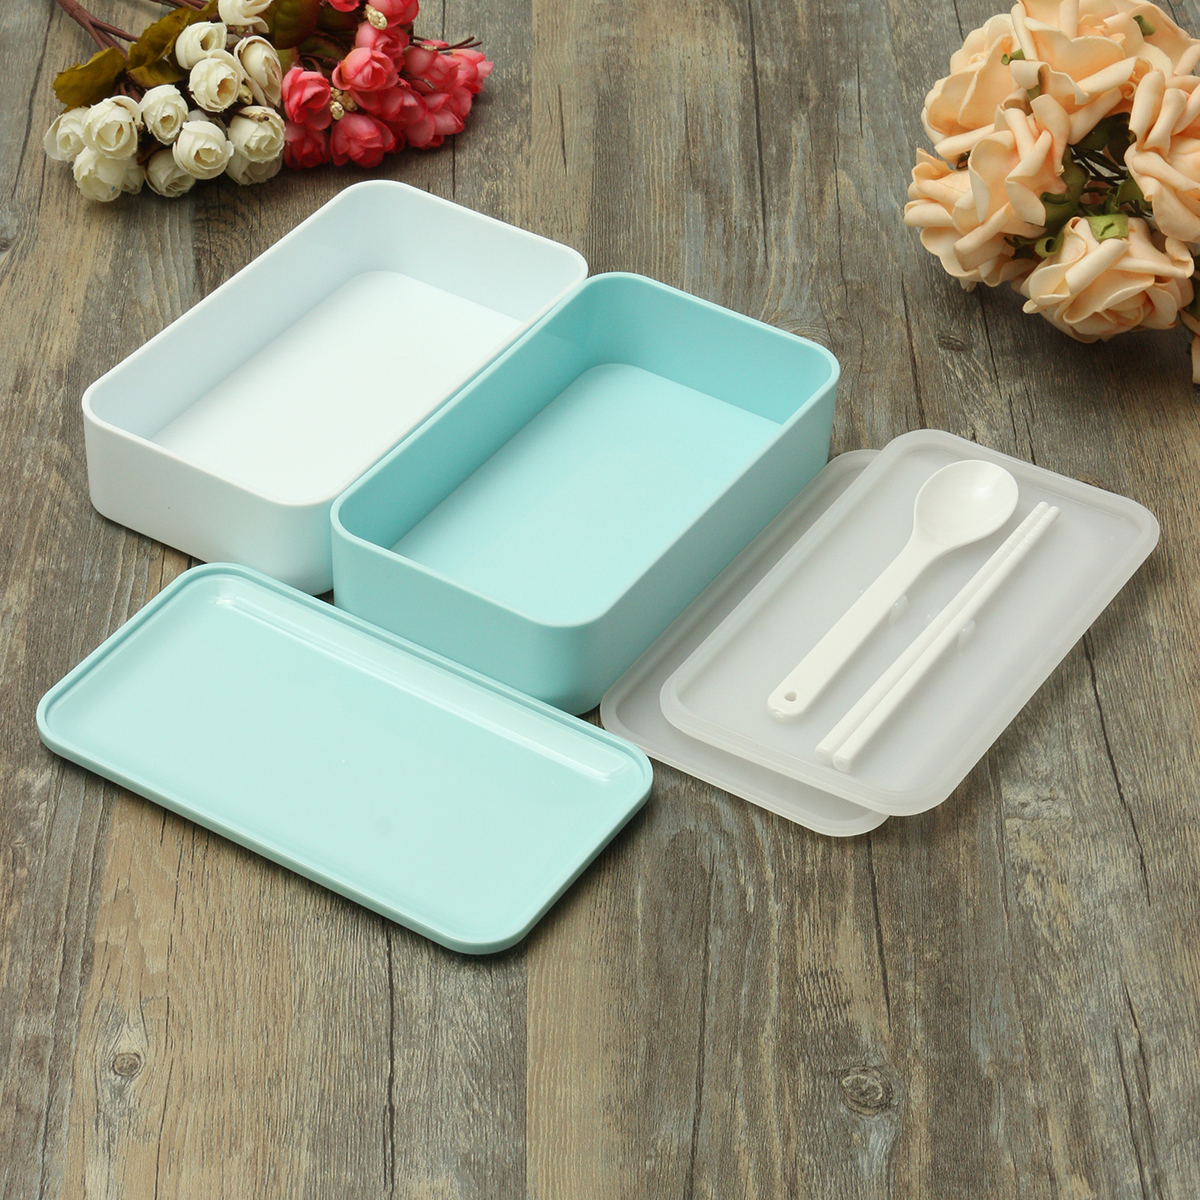 900ml 2 layer japanese lunch box picnic bento food container spoon chopstic ebay. Black Bedroom Furniture Sets. Home Design Ideas